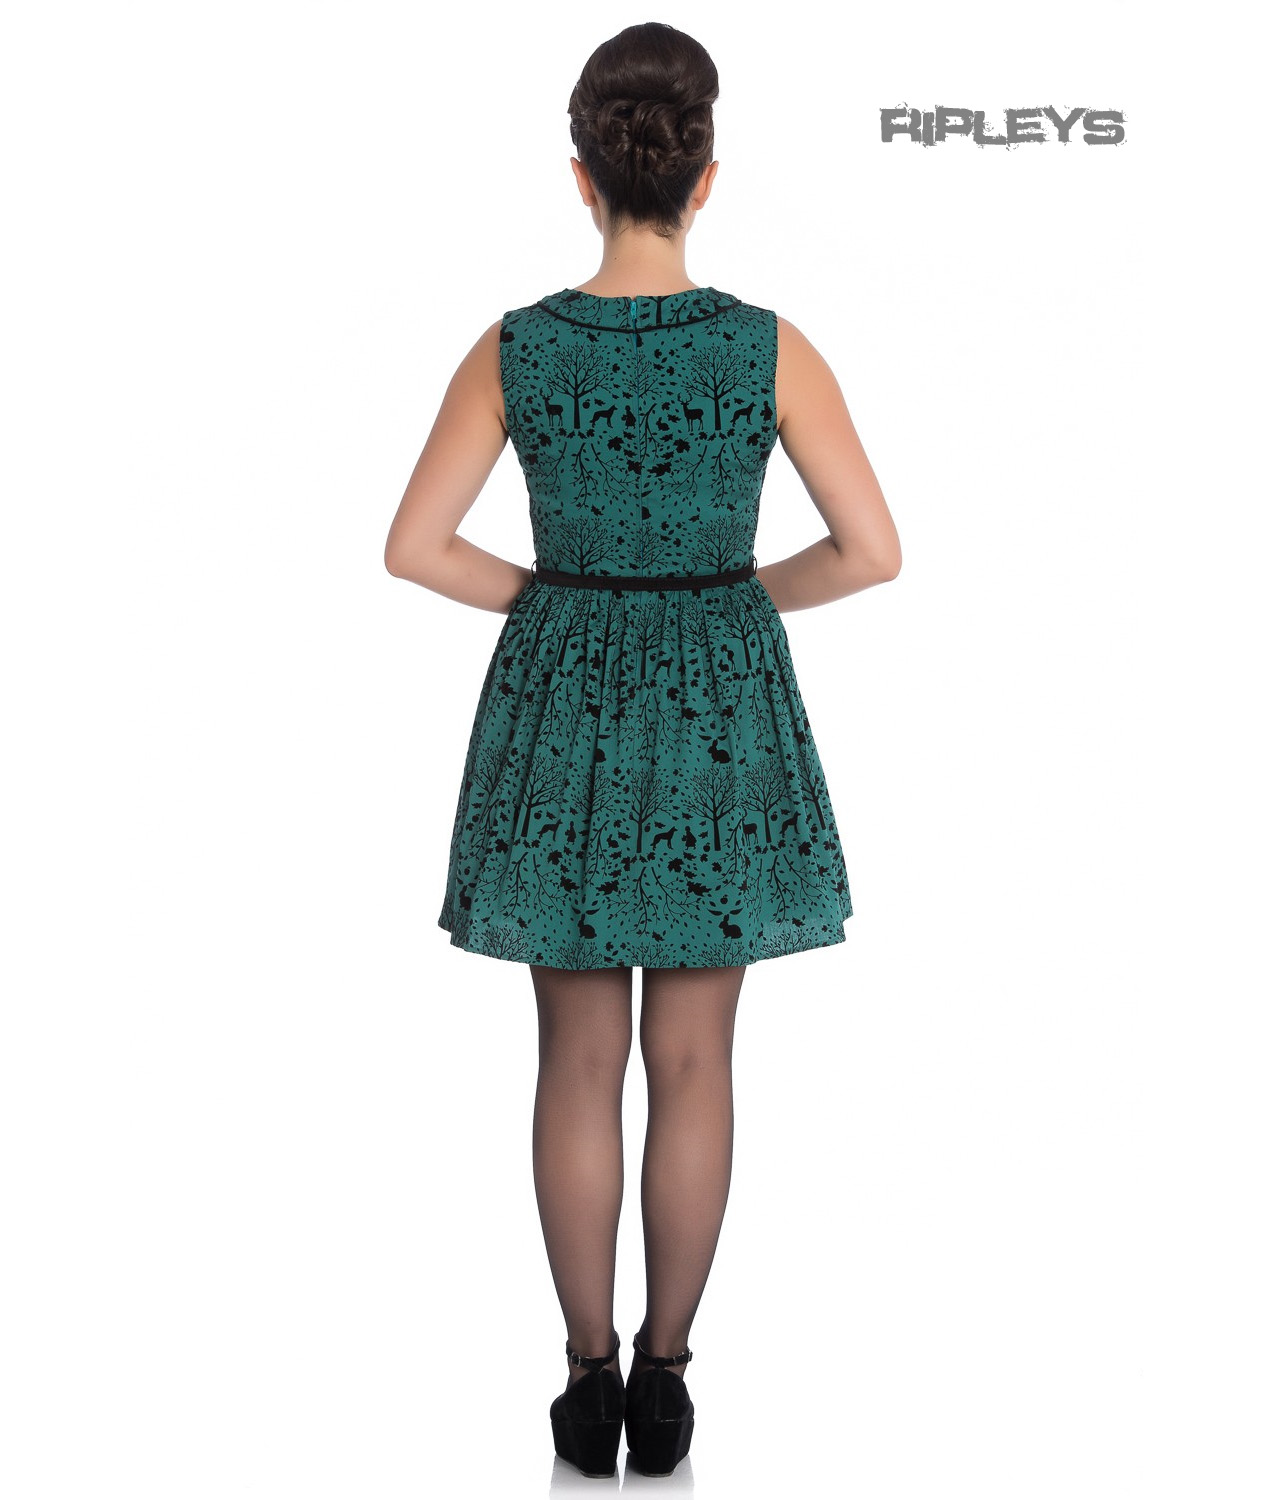 Hell-Bunny-50s-Mini-Skater-Dress-Woodland-Trees-SHERWOOD-Dark-Green-All-Sizes thumbnail 20